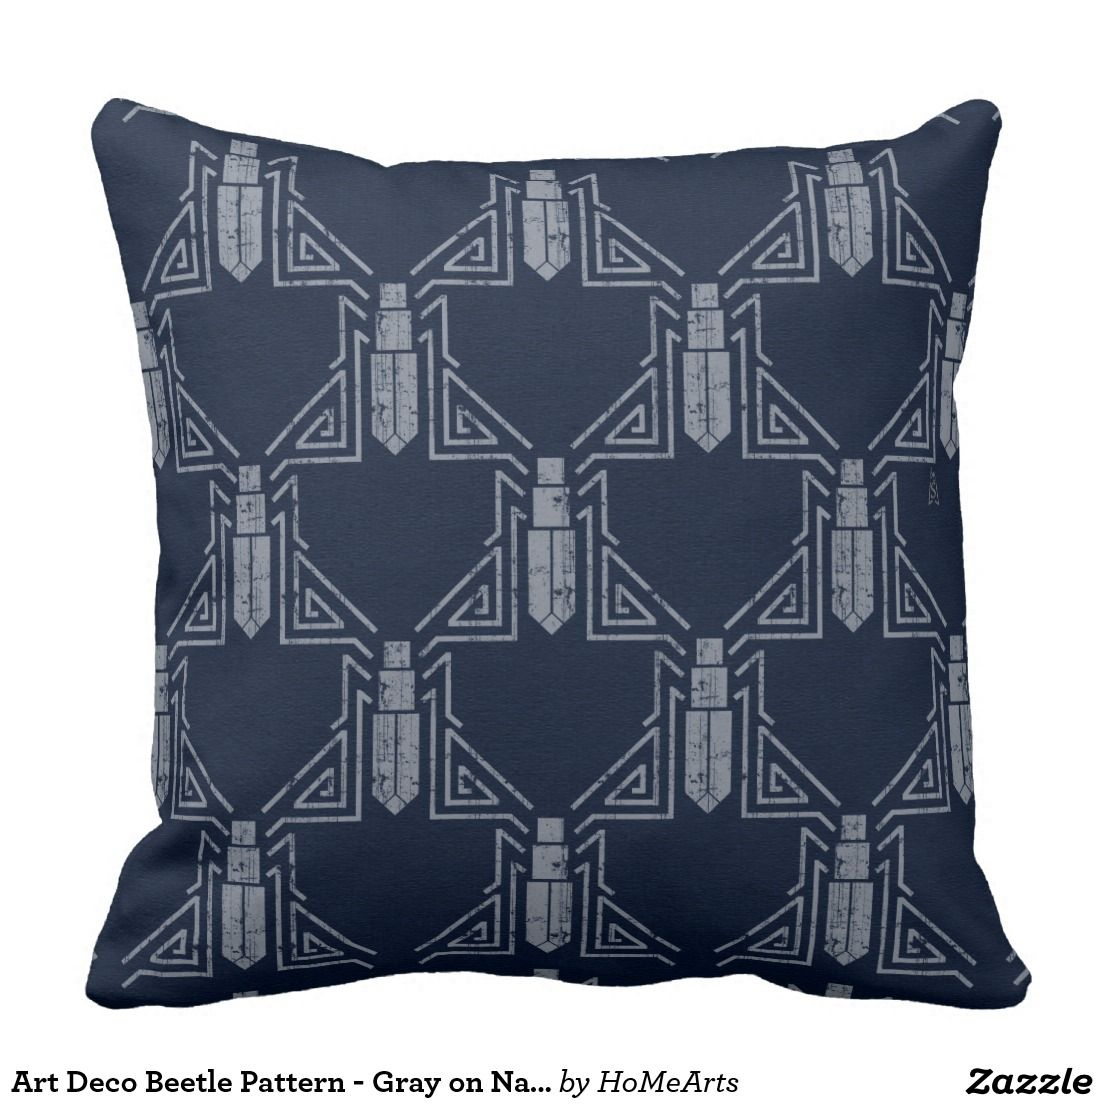 """Art Deco Beetle Pattern - Gray on Navy Blue Throw Pillow - Among the factors that joined together and grew into what we call """"Art Deco"""" was the Egyptian Revival following the discovery of King Tutankhamun's tomb.   In Tut's time, #beetles were a common theme on everything from textiles to jewelry. This pillow features an original variation of such designs, w/a distressed pale blue-gray on a navy blue background. #artdeco_pillows #navy_blue_pillows"""